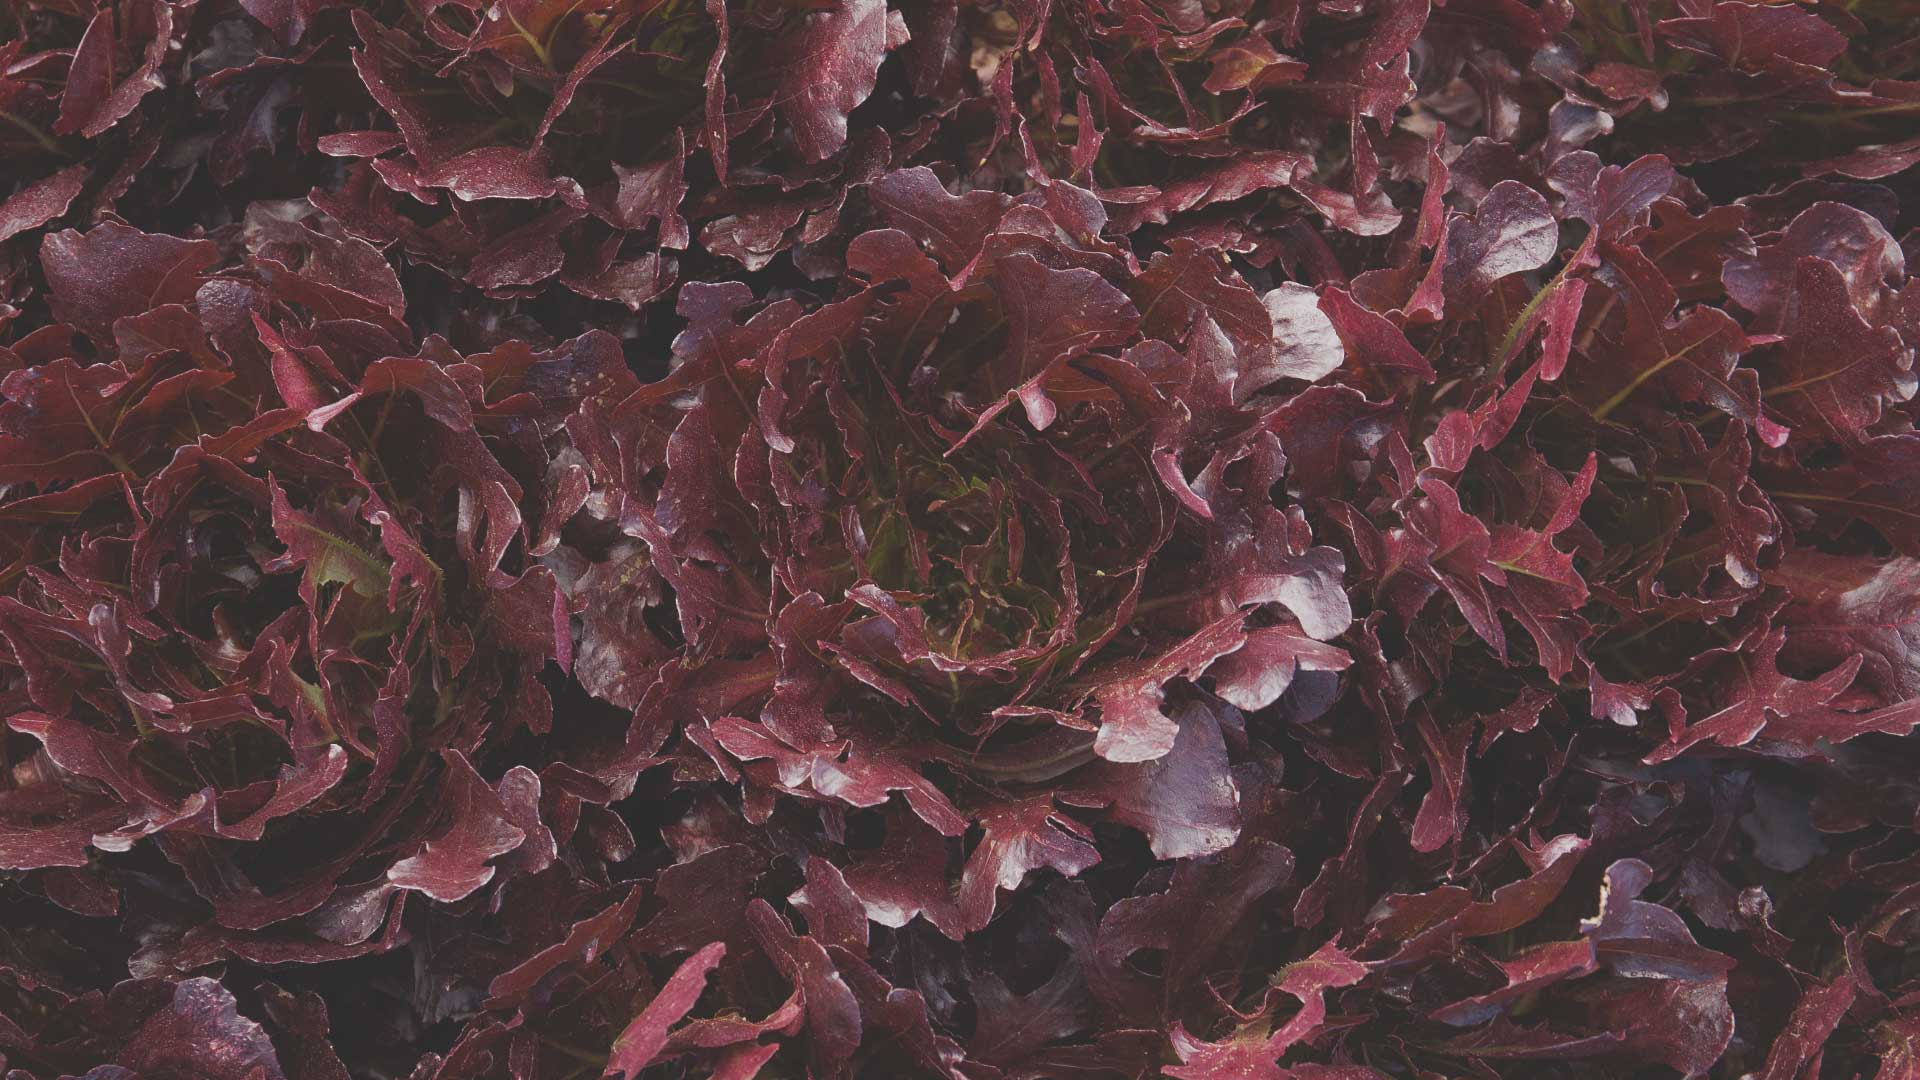 Organic Non-GMO Buckley Lettuce Spinach from High Mowing Organic Seeds